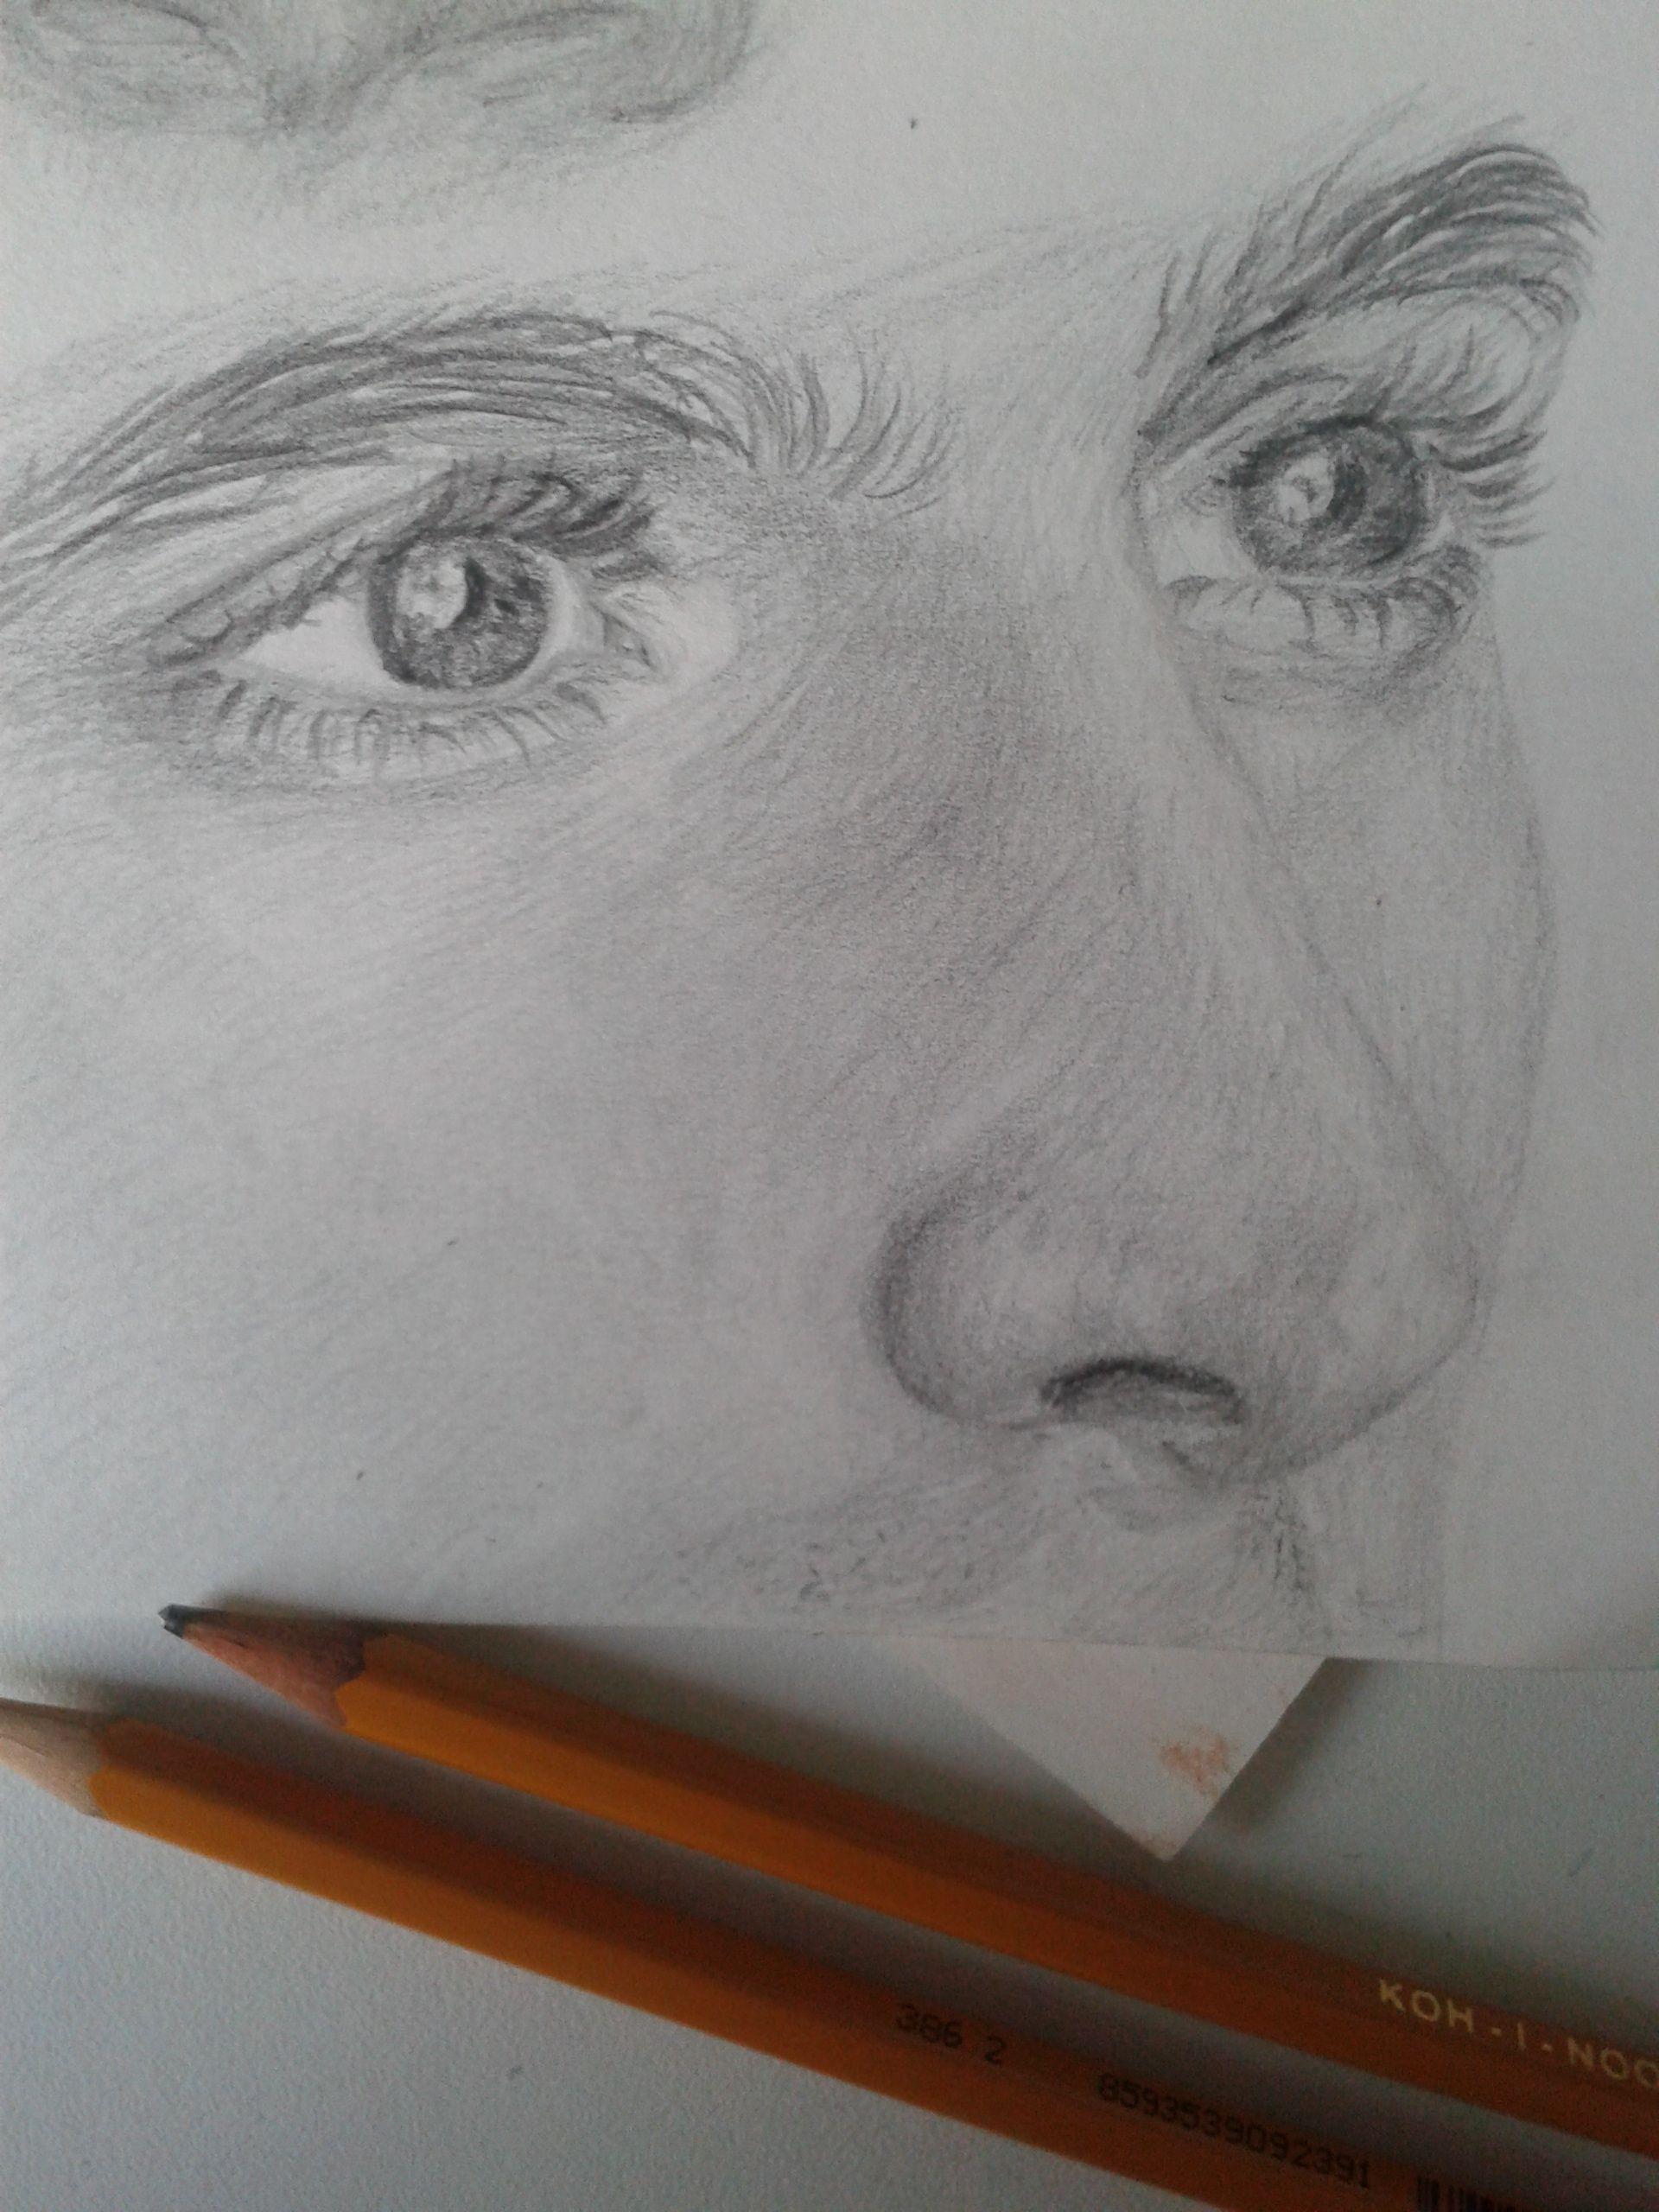 Quick sketch of max irons draw drawing art artist pencil color colors paper love pasion face man men hot cute boy made by me